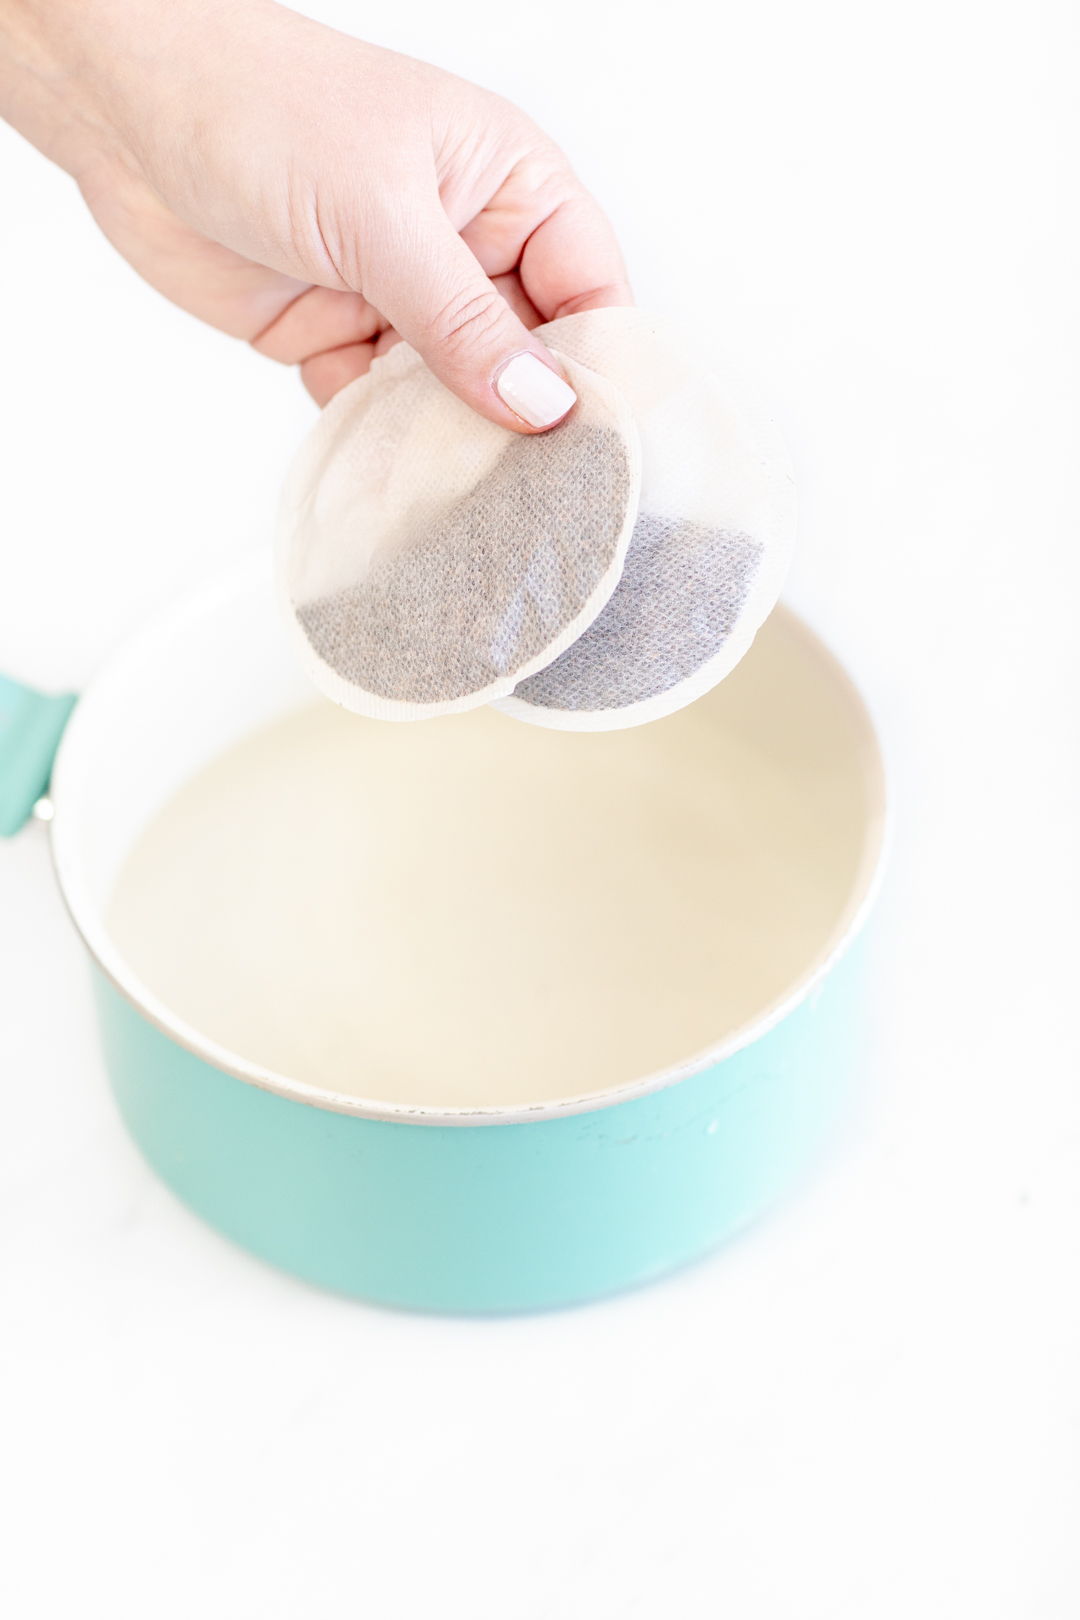 placing round iced tea bags into a potplacing round iced tea bags into a pot